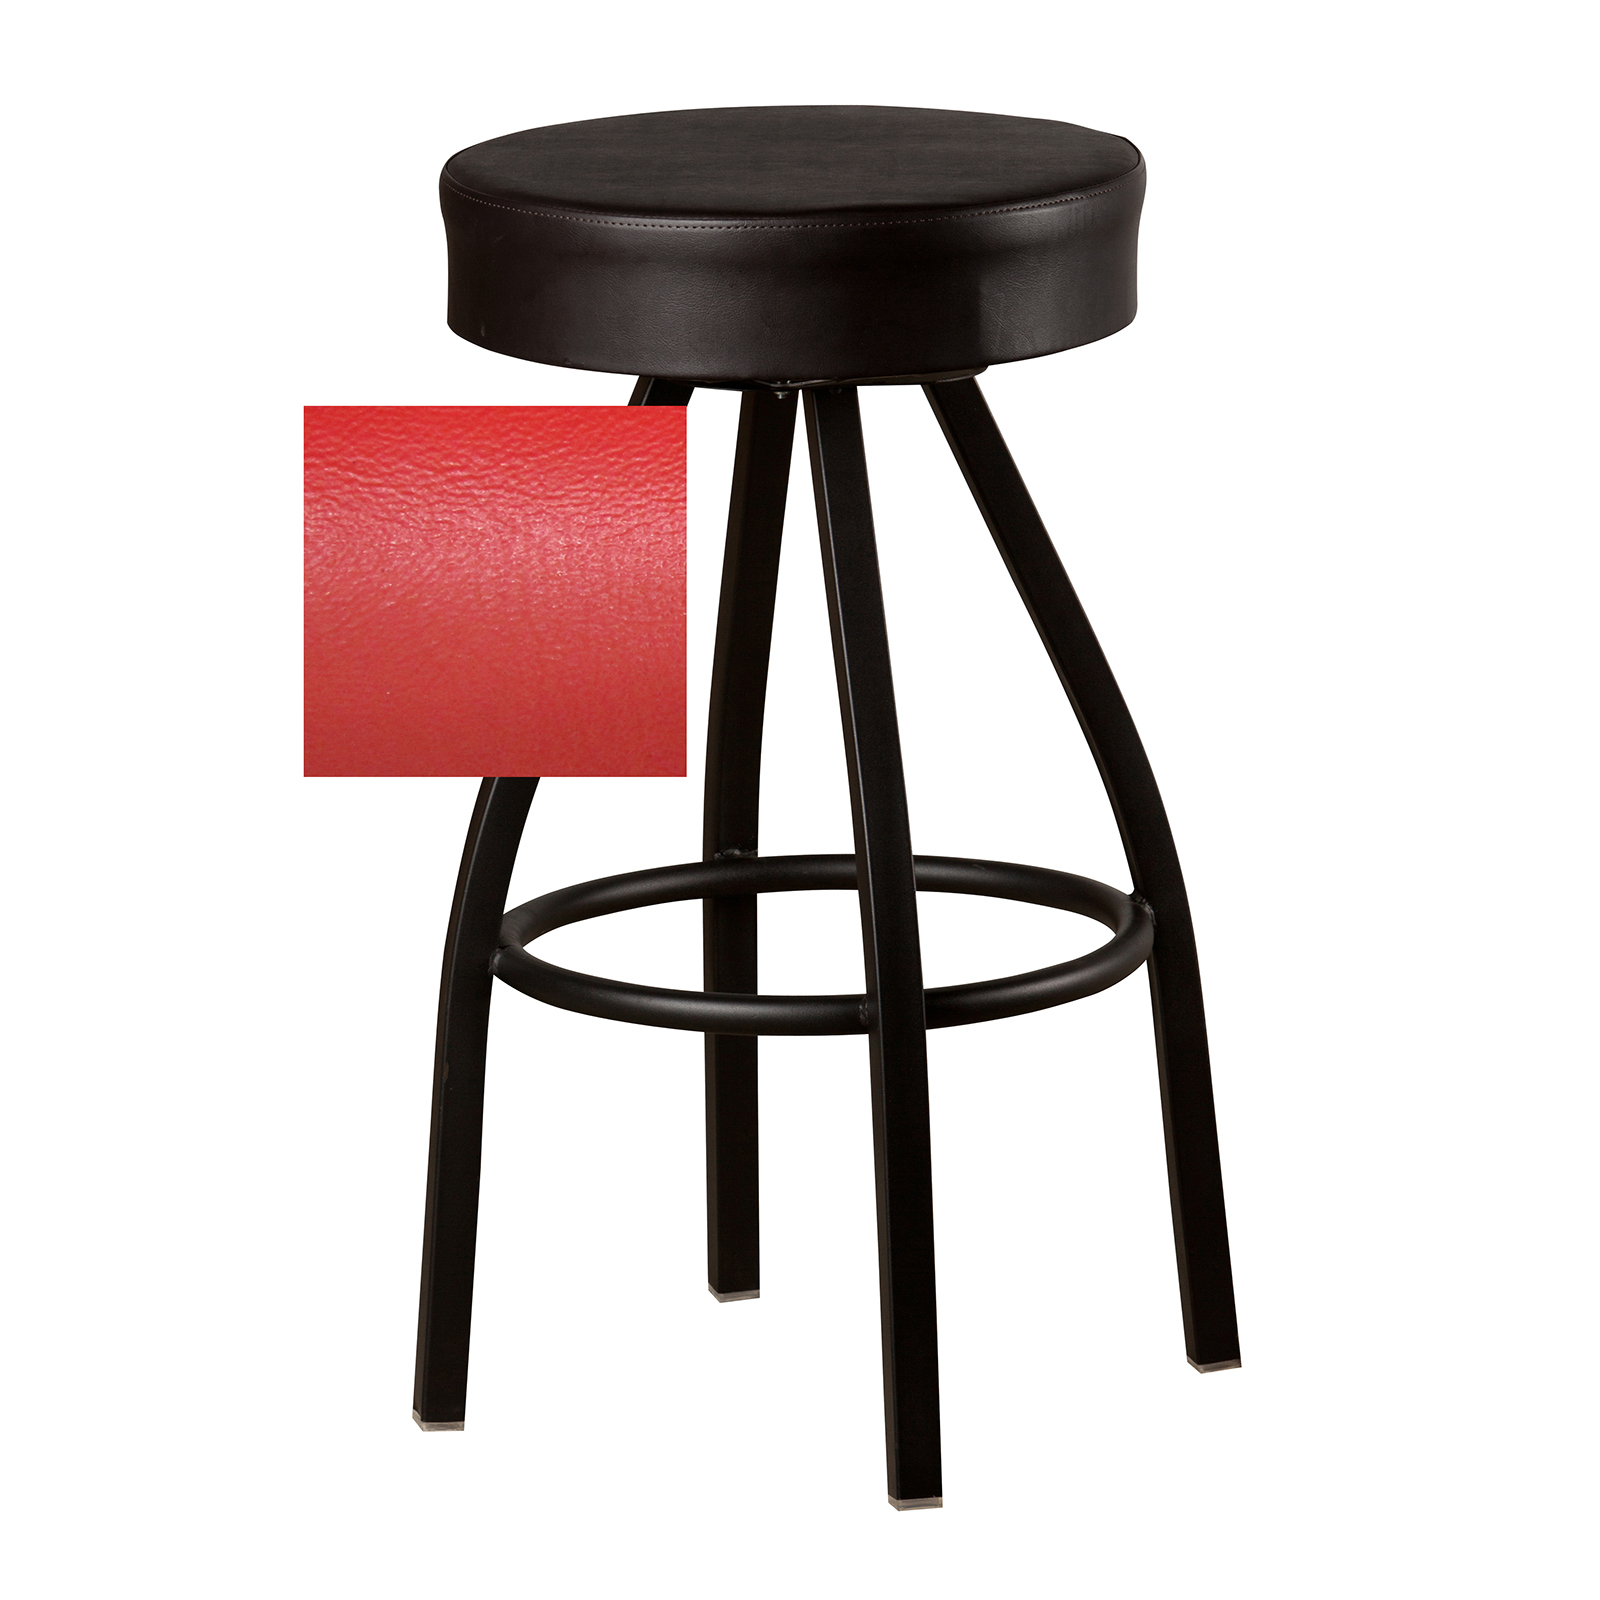 Oak Street SL0137-RED bar stool, swivel, indoor